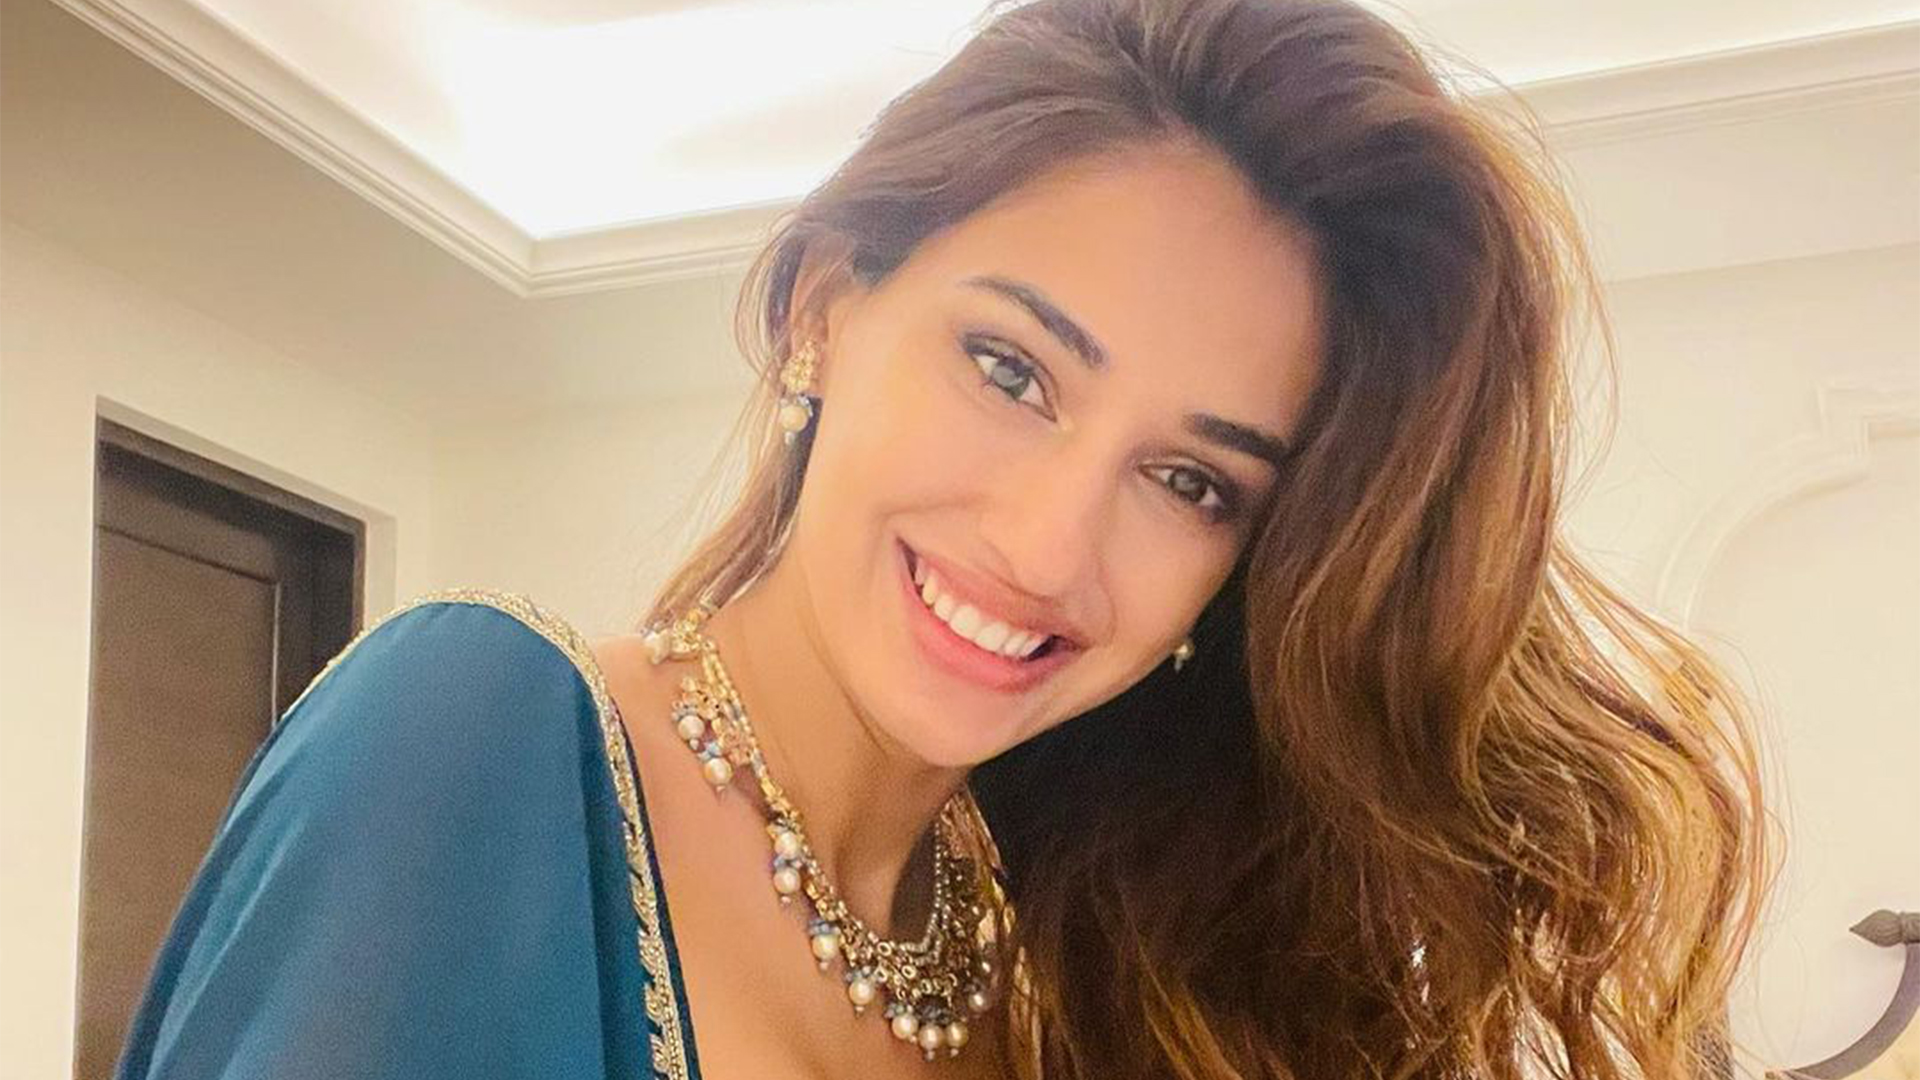 Disha Patani is awestruck by Tiger Shroff's killer and smooth moves in his latest dance video; Take a look